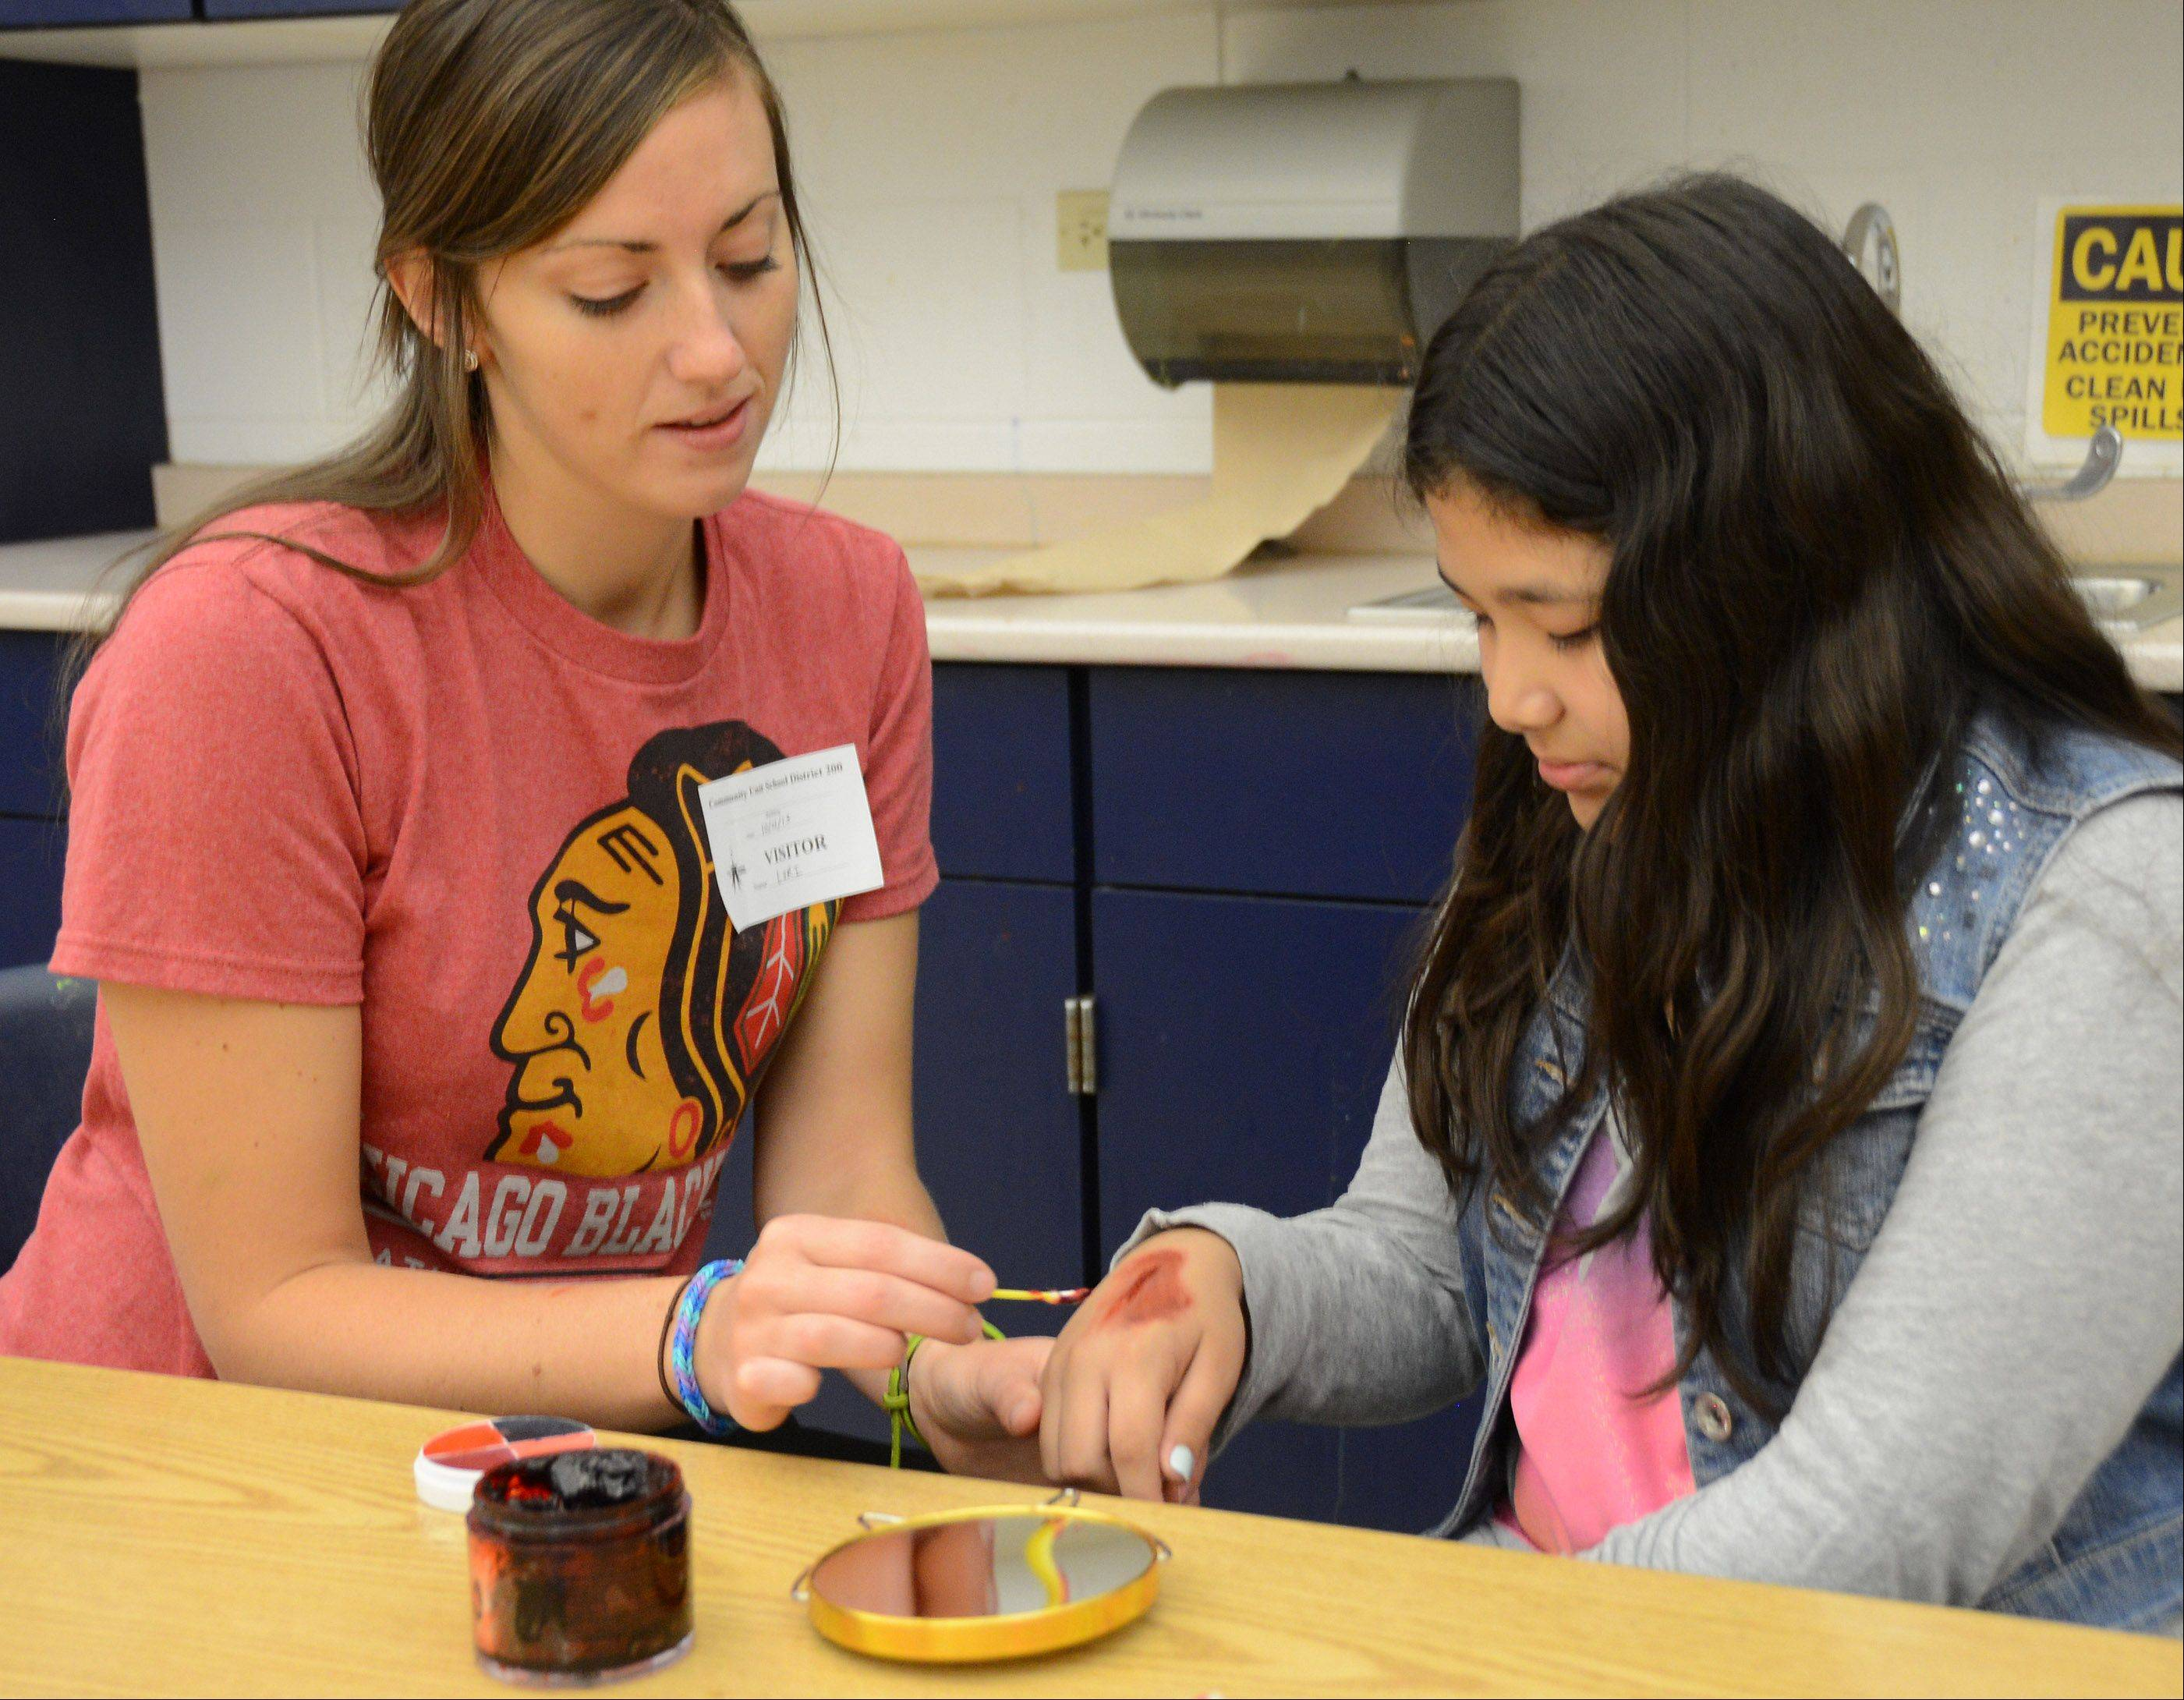 Central DuPage Hospital nurse Lori Bratten, left, fixes up fifth-grader Laura Pineda with a simulated burn.